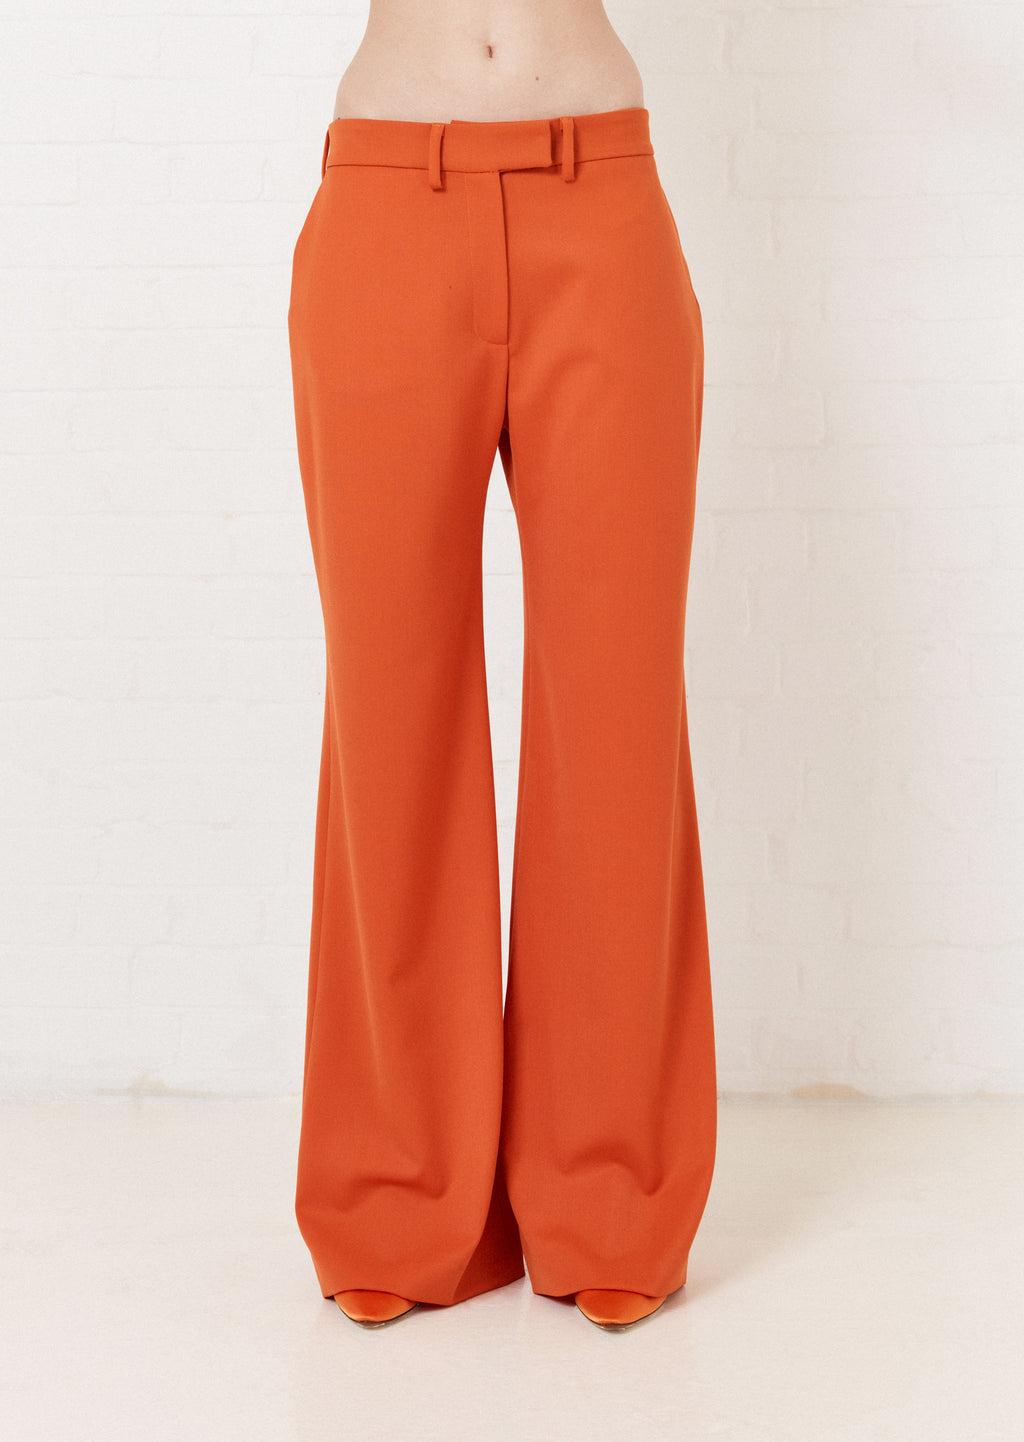 Pantalon orange à jambes larges